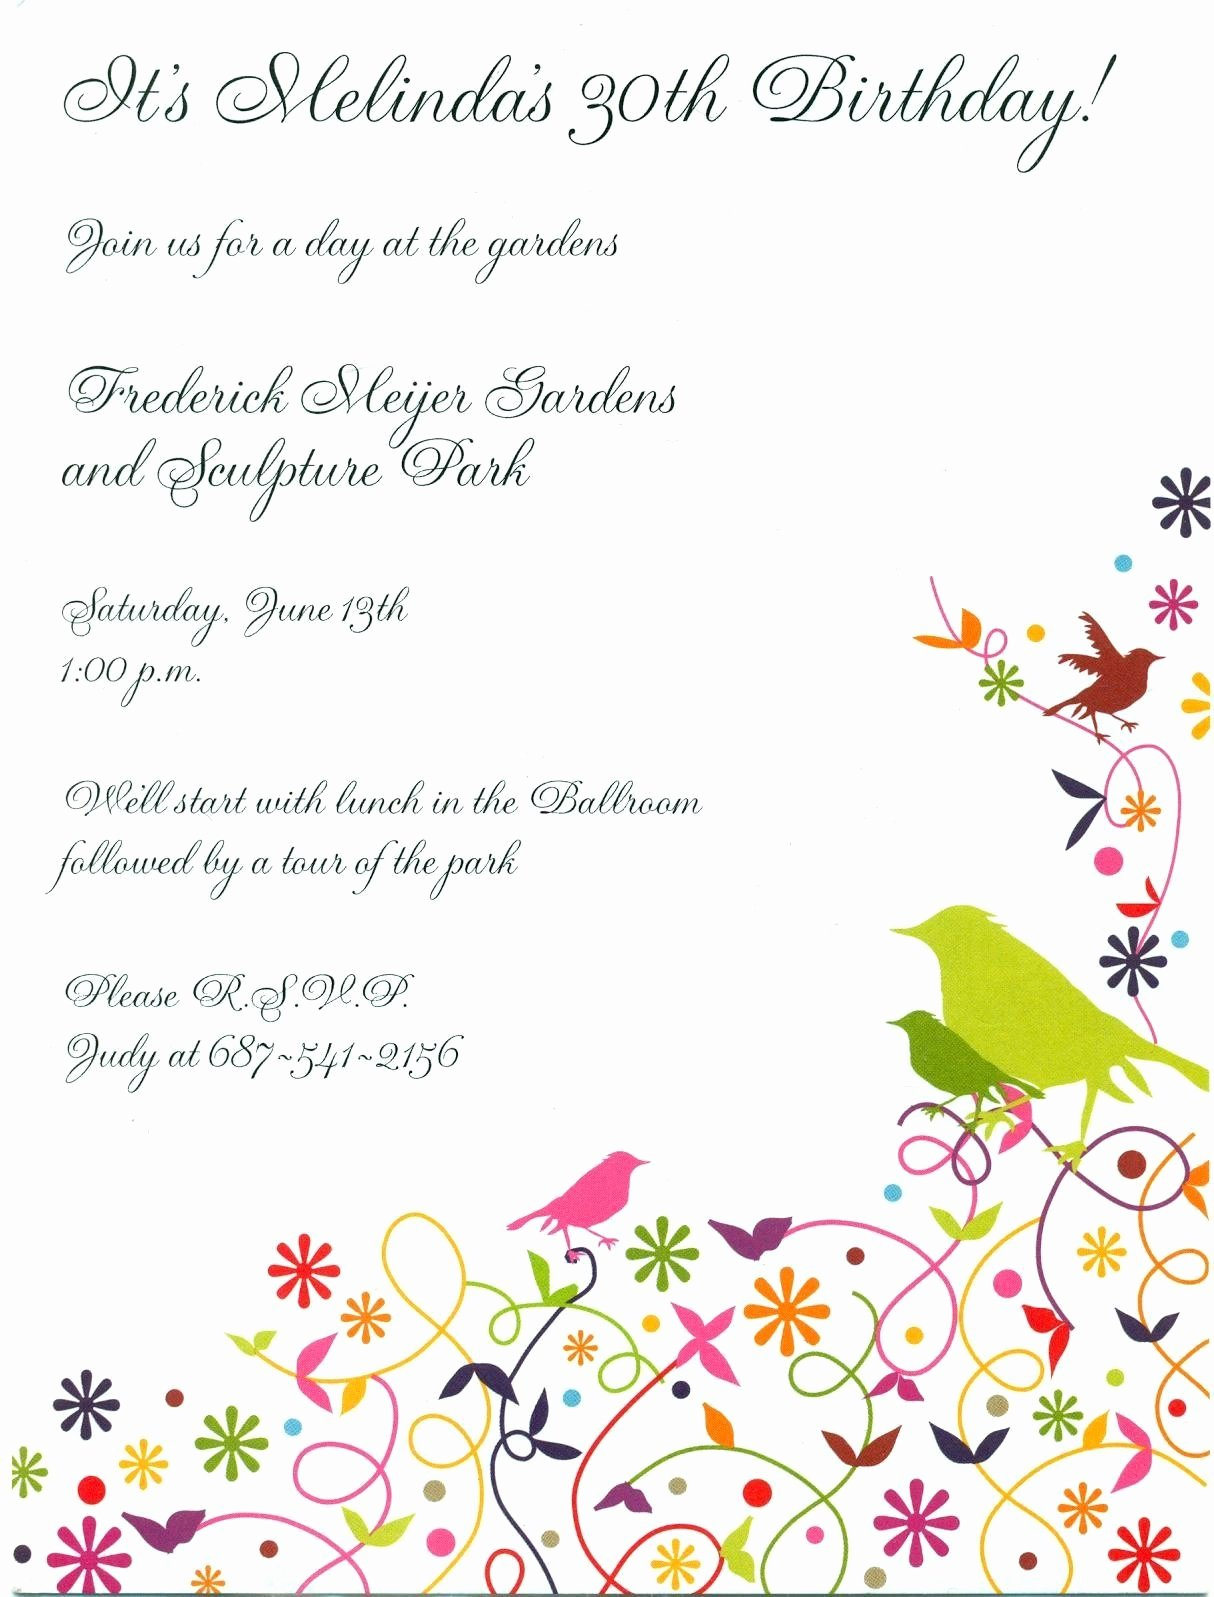 Summer Party Invitation Template New Summer Party Invitation Template Summer Birthday Party